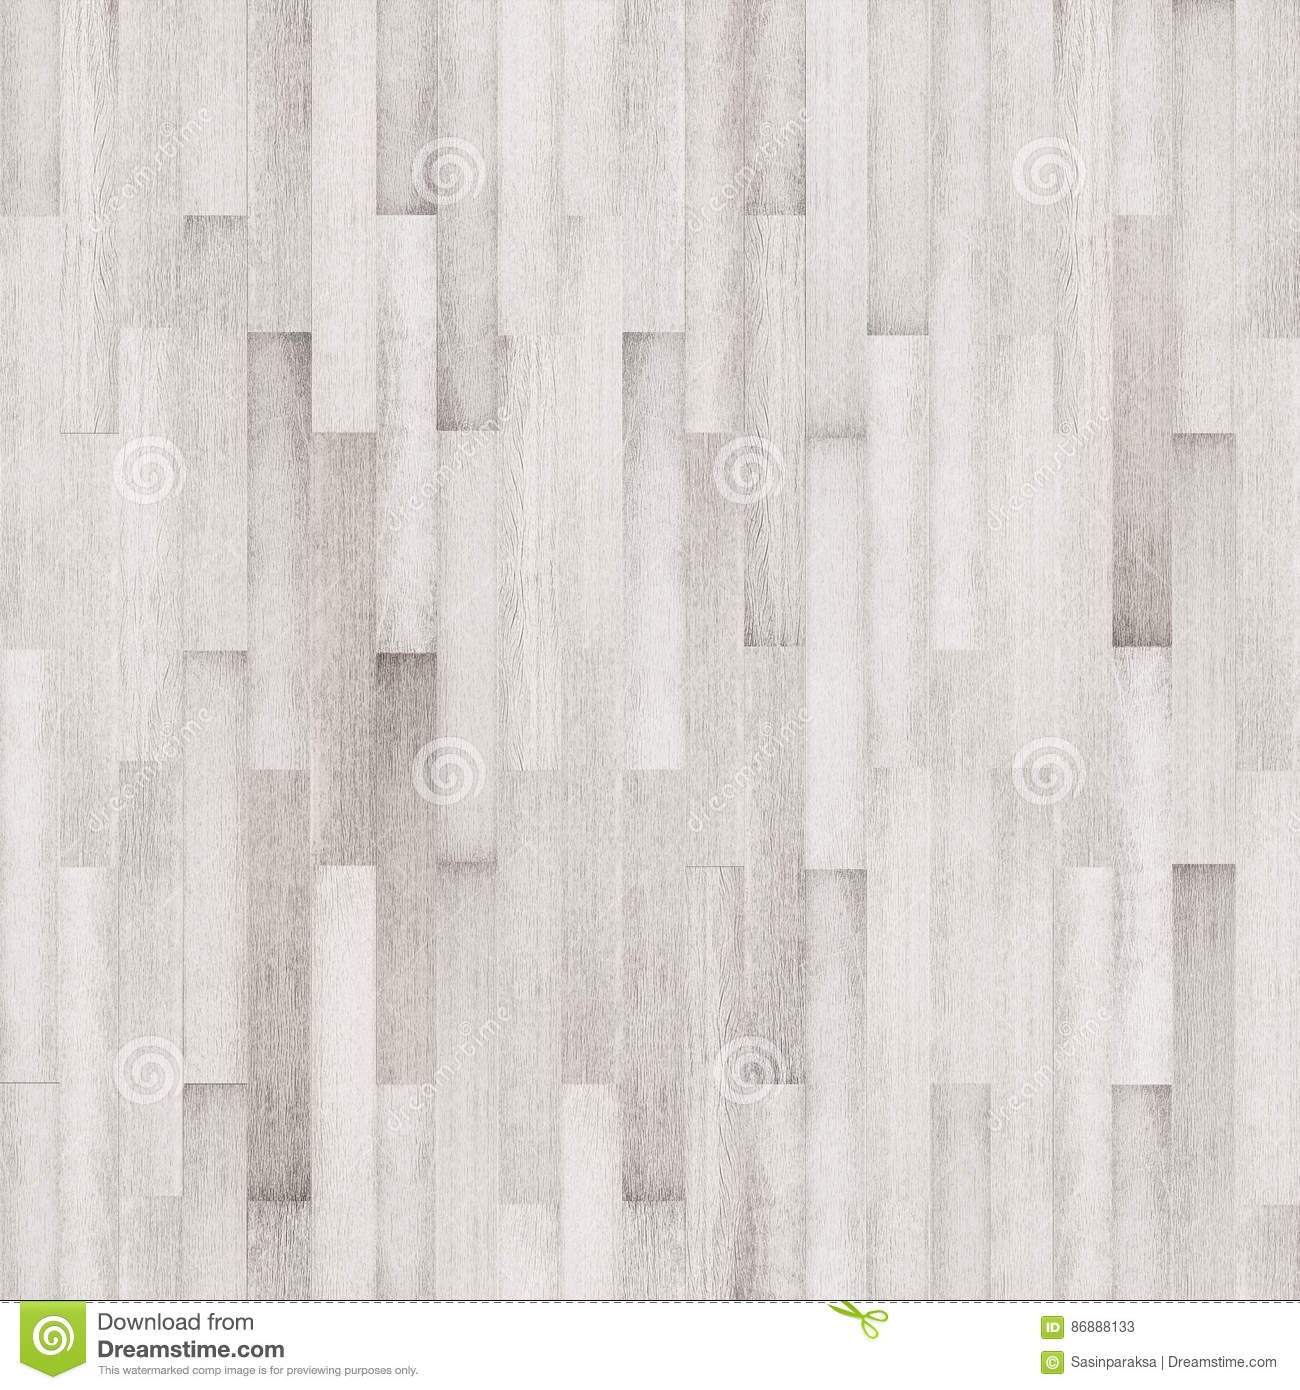 6 Bedroom Floor Plans White Wood Texture Seamless Wood Floor Texture Stock